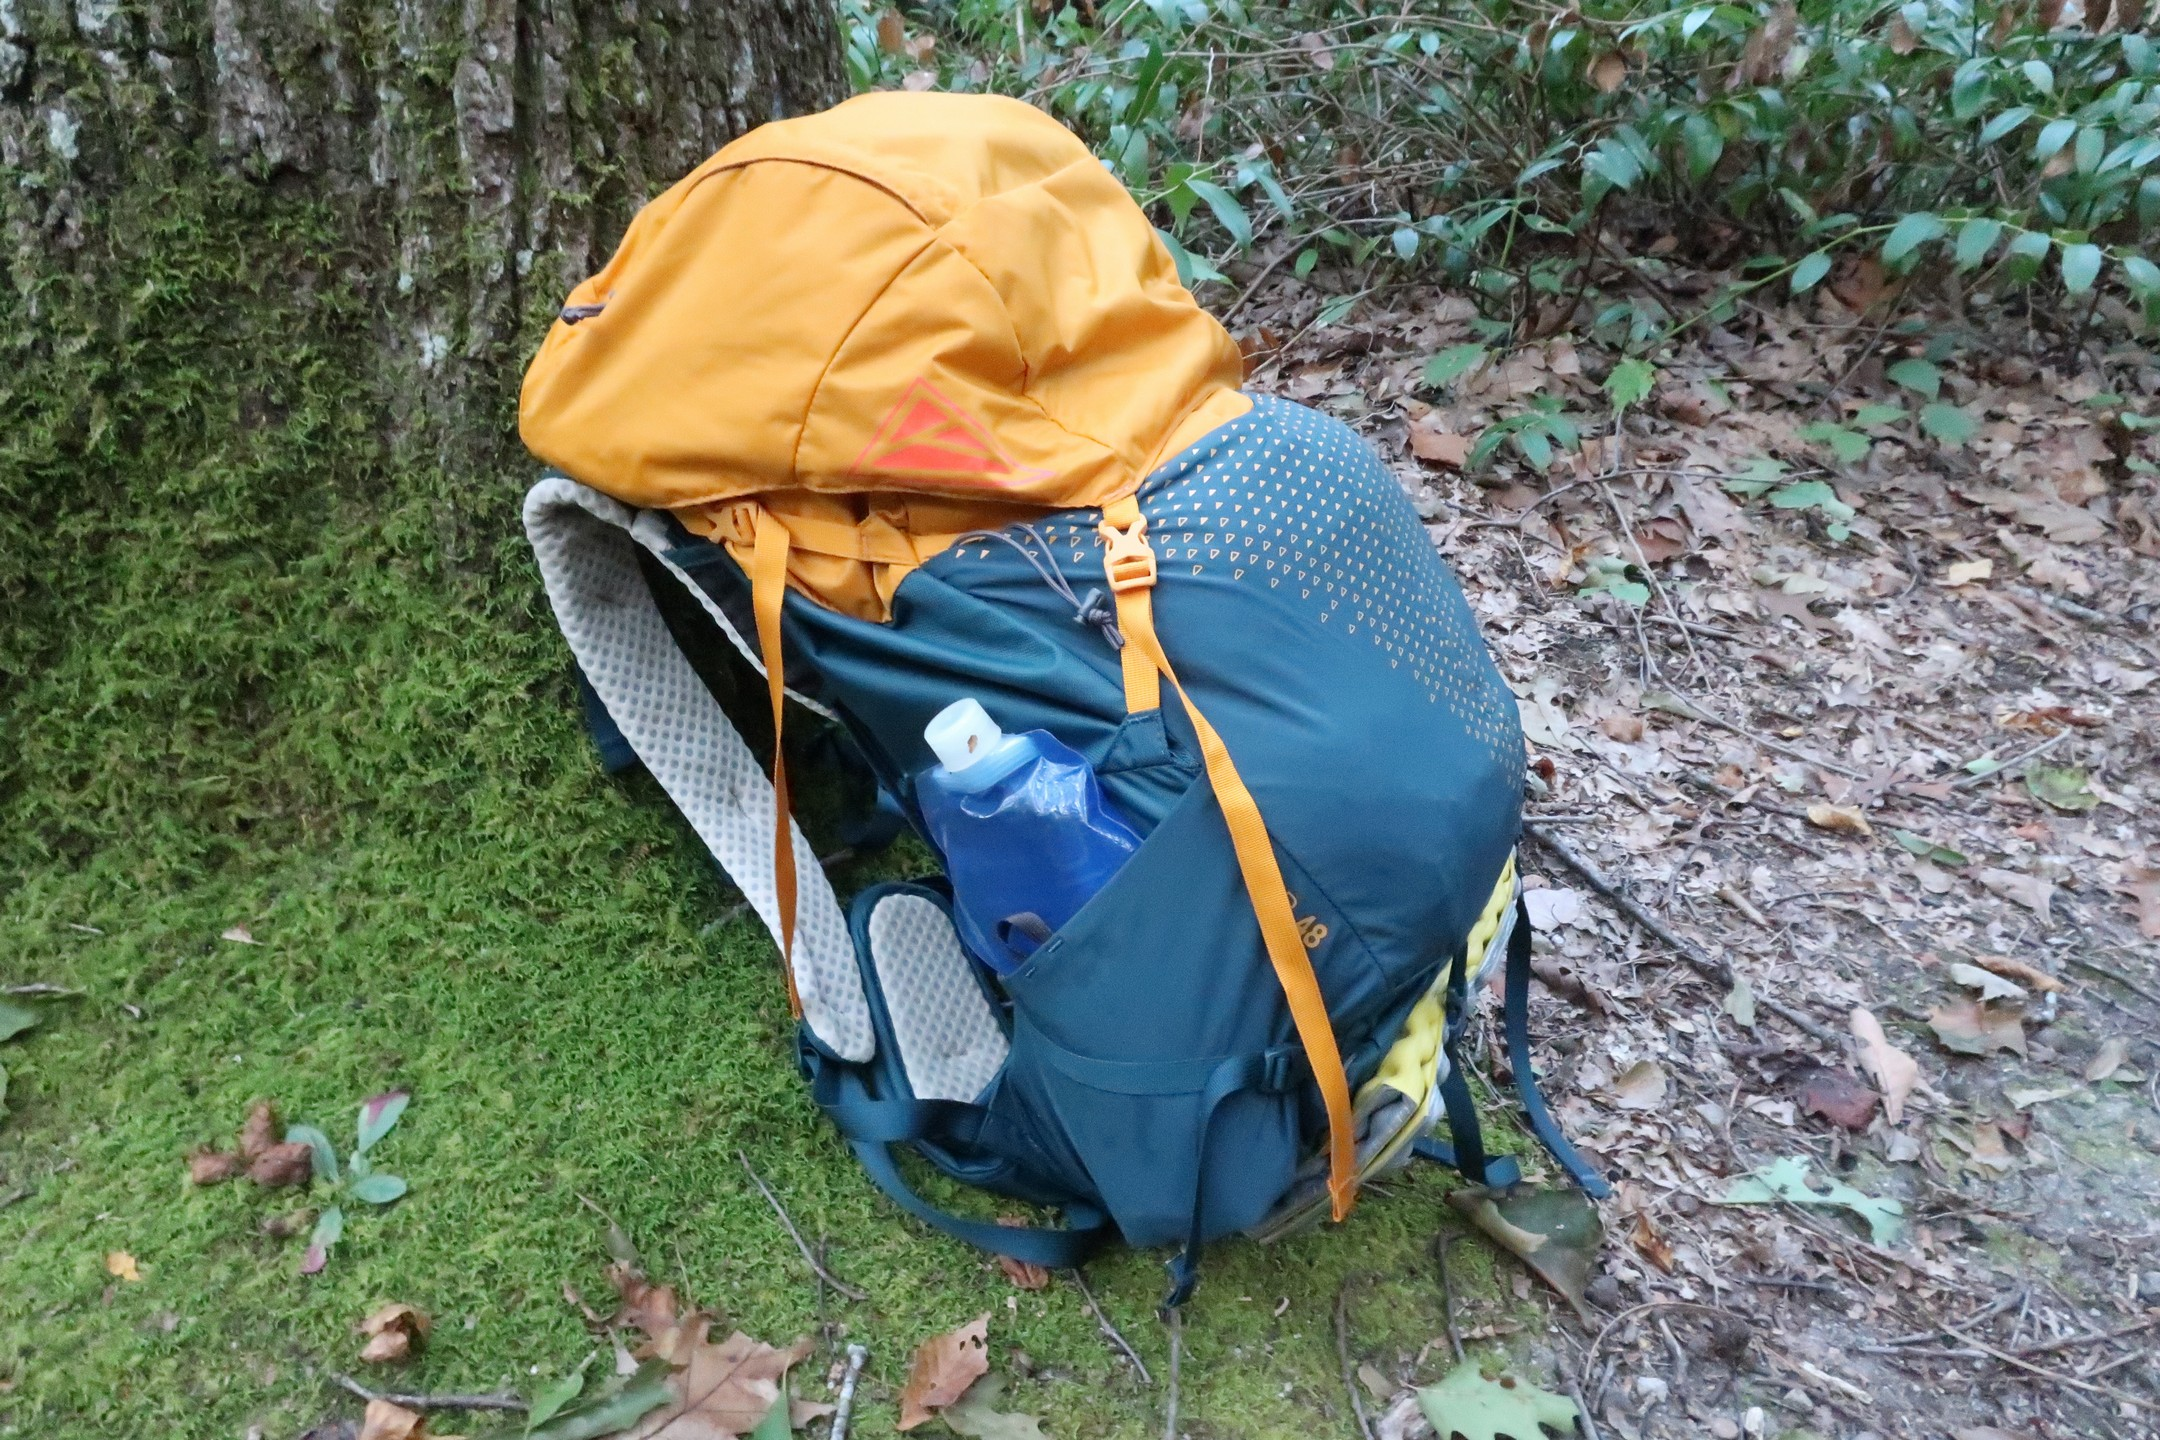 Kelty Zyp 48 backpack